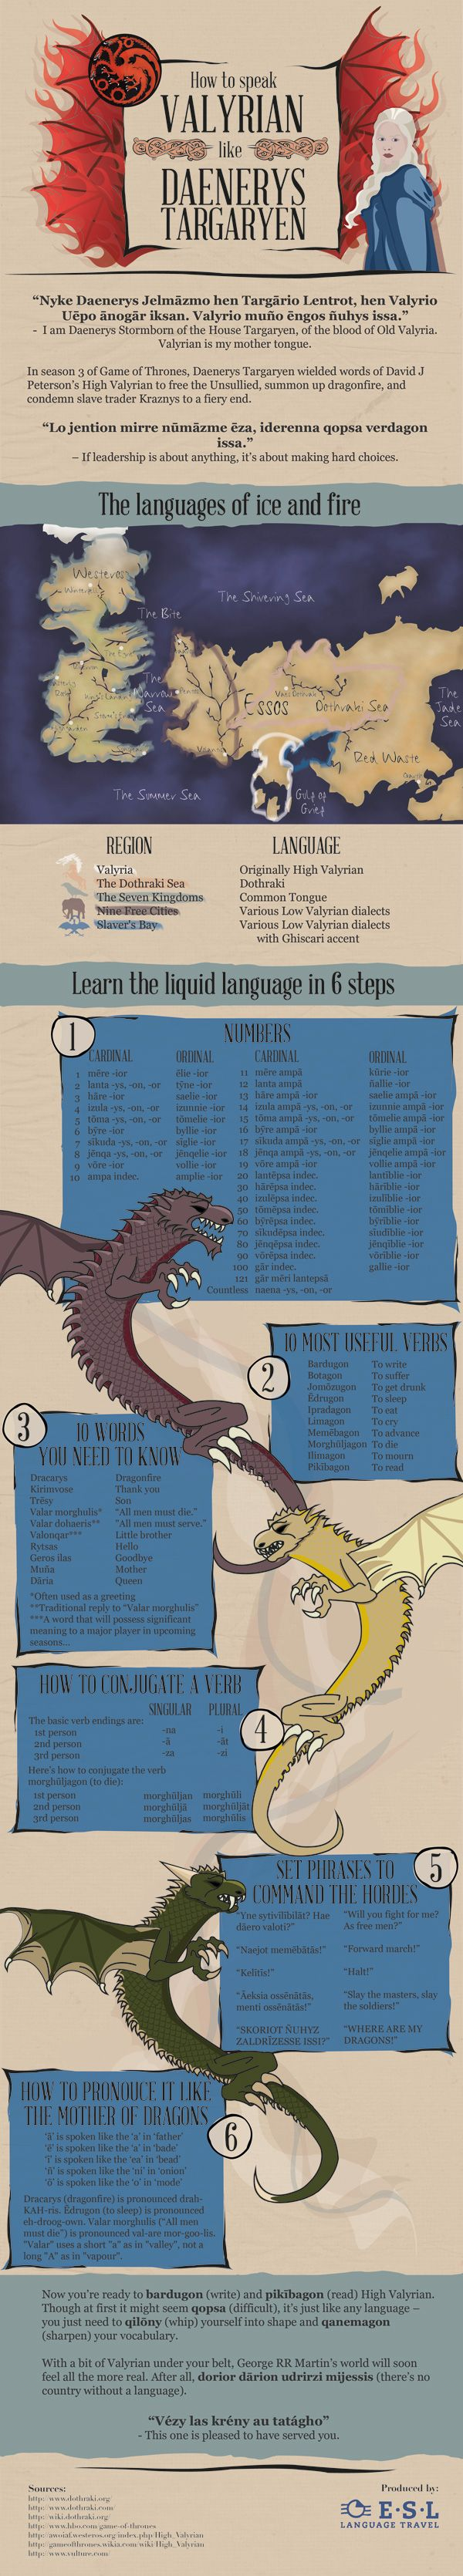 How to speak Valyrian like Daenerys Targaryen #Infographic #GoT #Gameofthrones